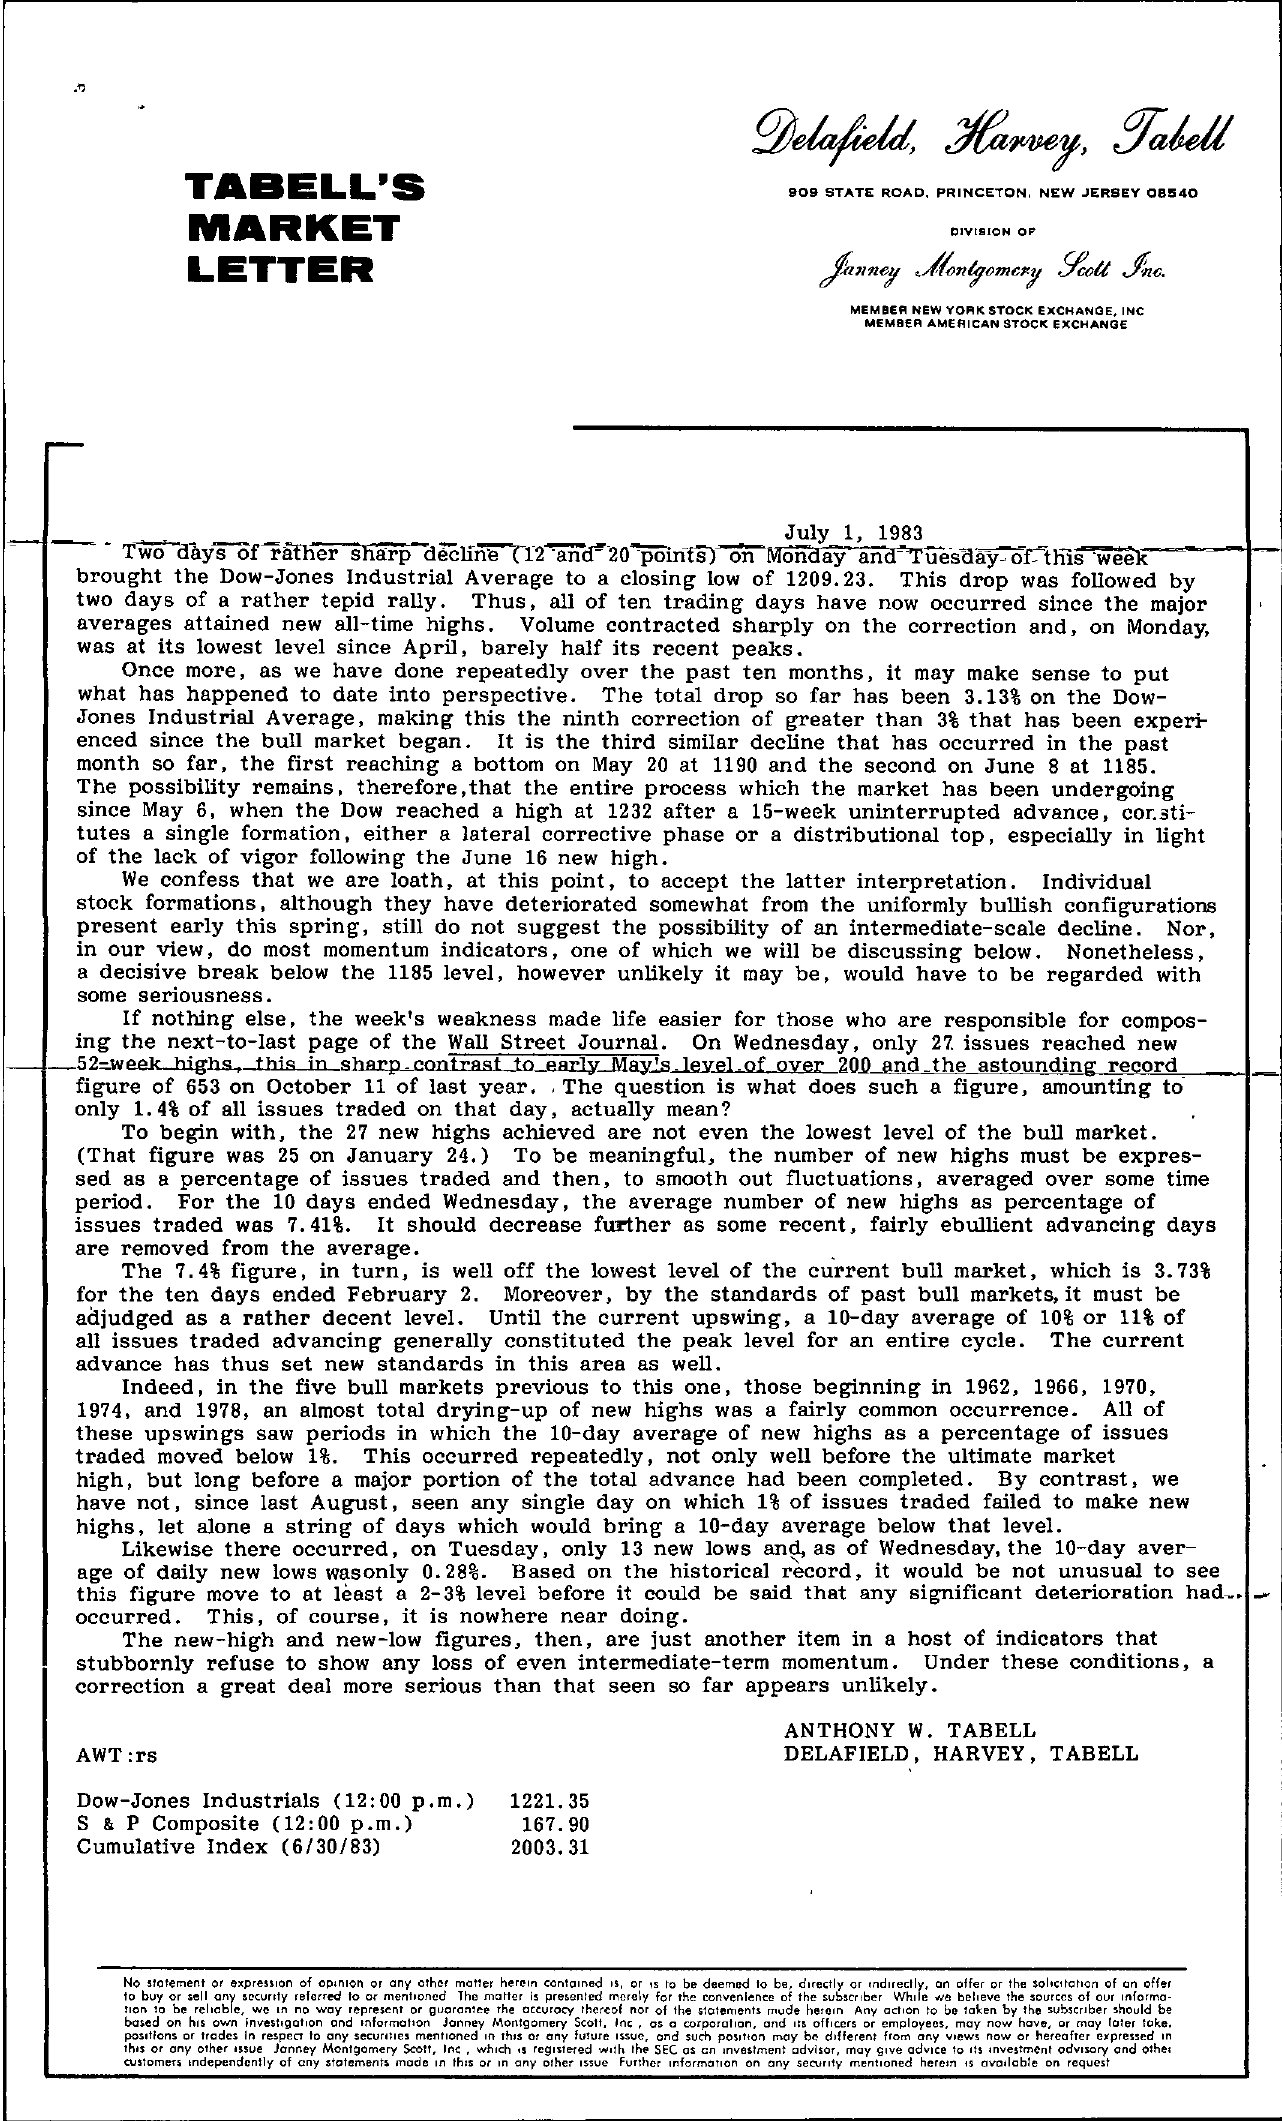 Tabell's Market Letter - July 01, 1983